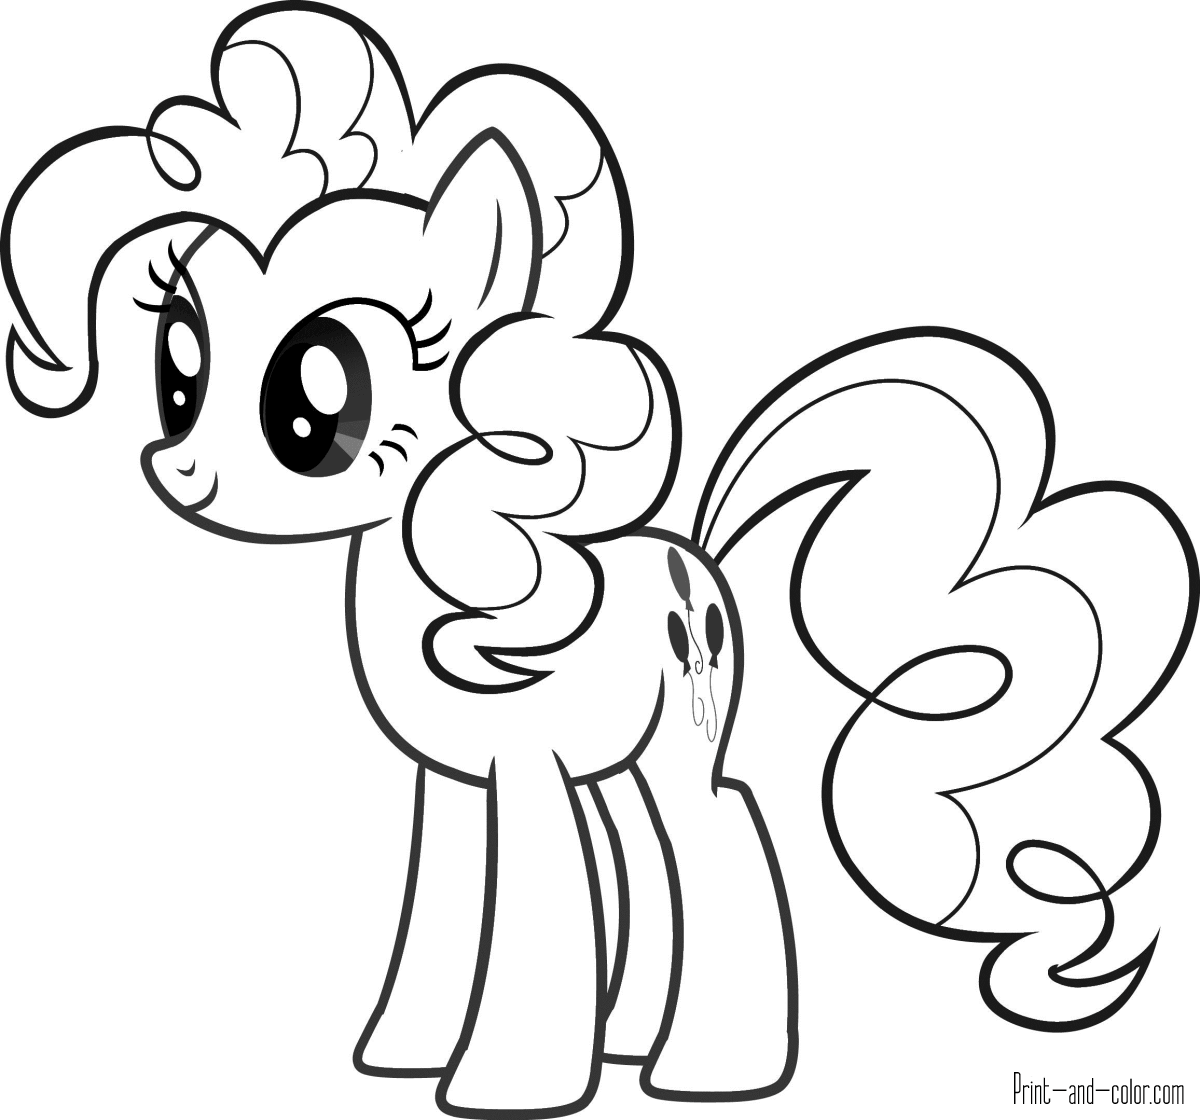 pony to color my little pony coloring pages print and colorcom pony to color